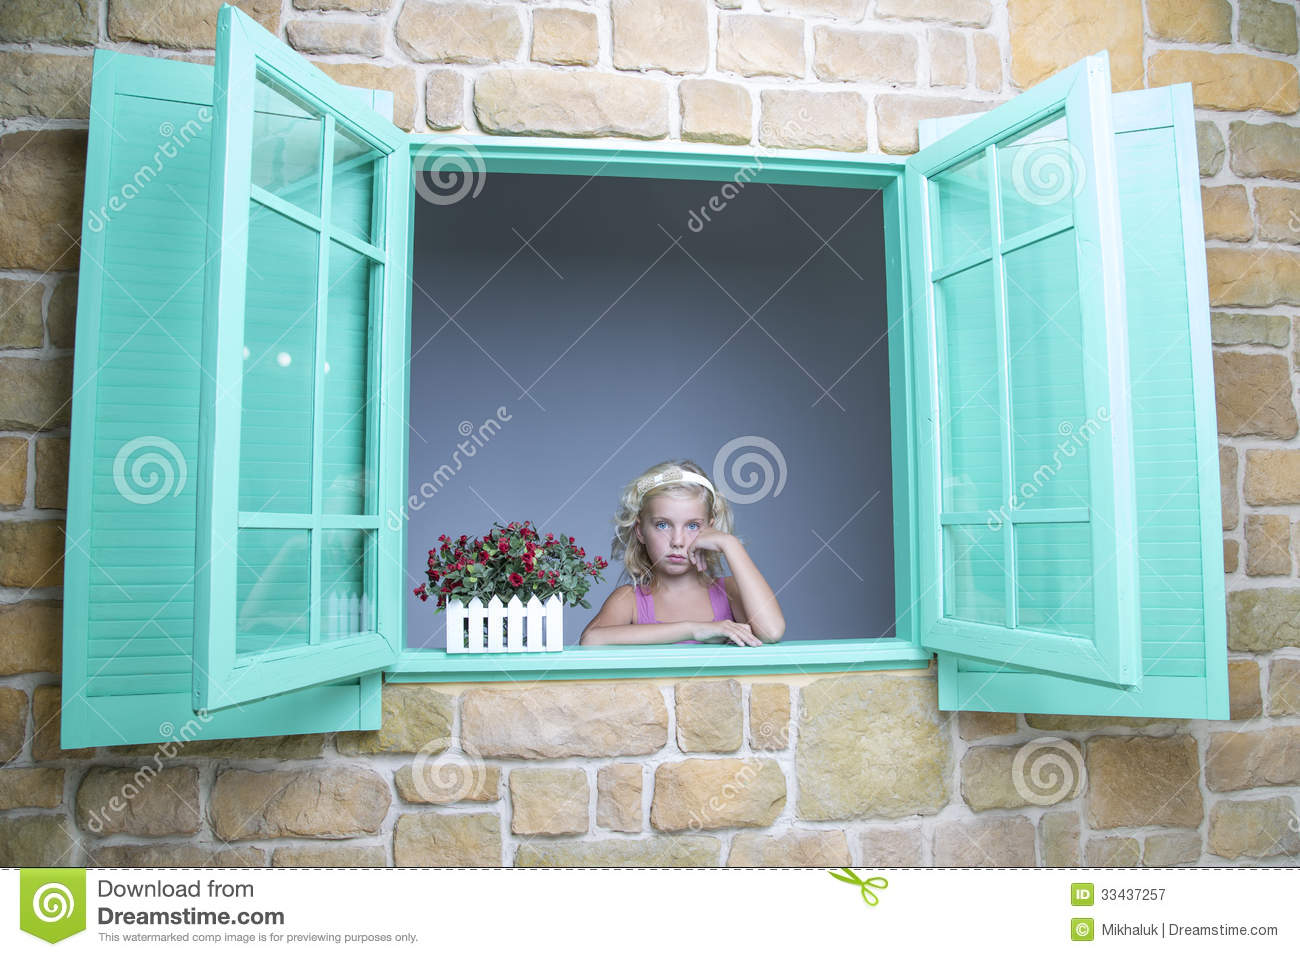 Cute Xmas Wallpapers Free Girl Looking Out Of Window Royalty Free Stock Photography